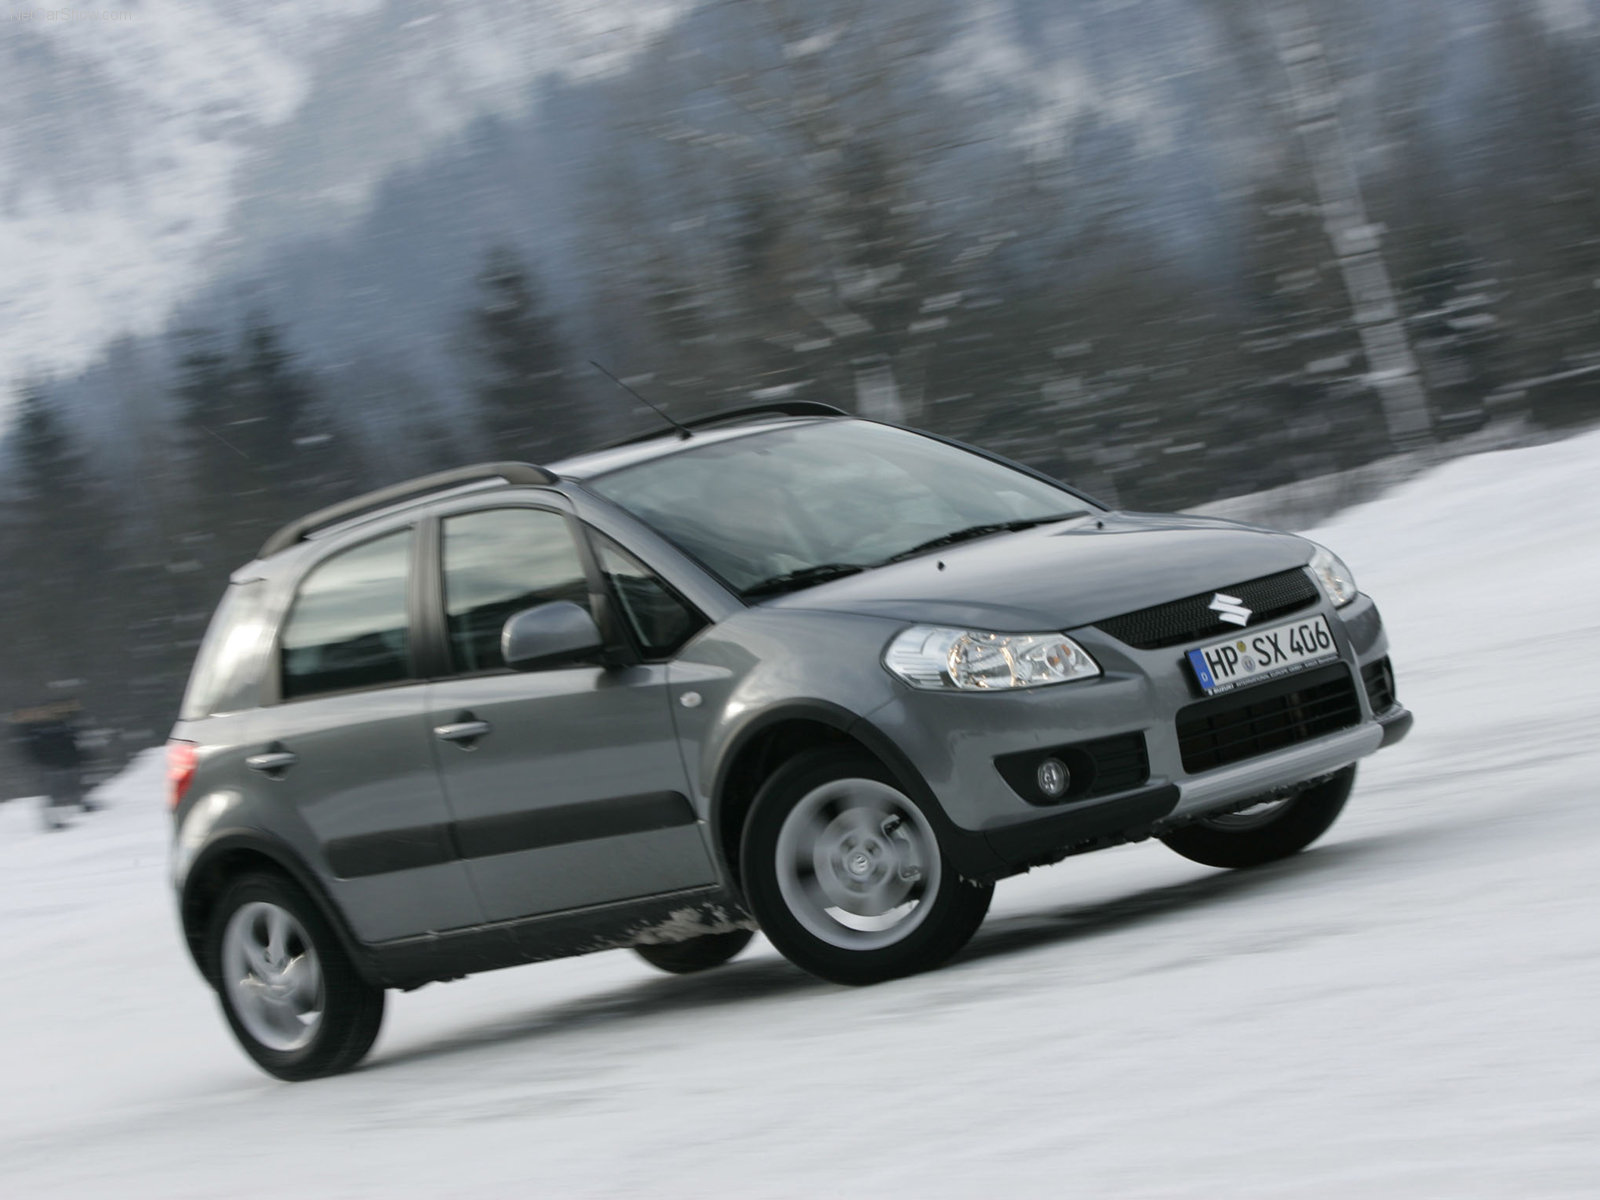 You can vote for this Suzuki SX4 photo